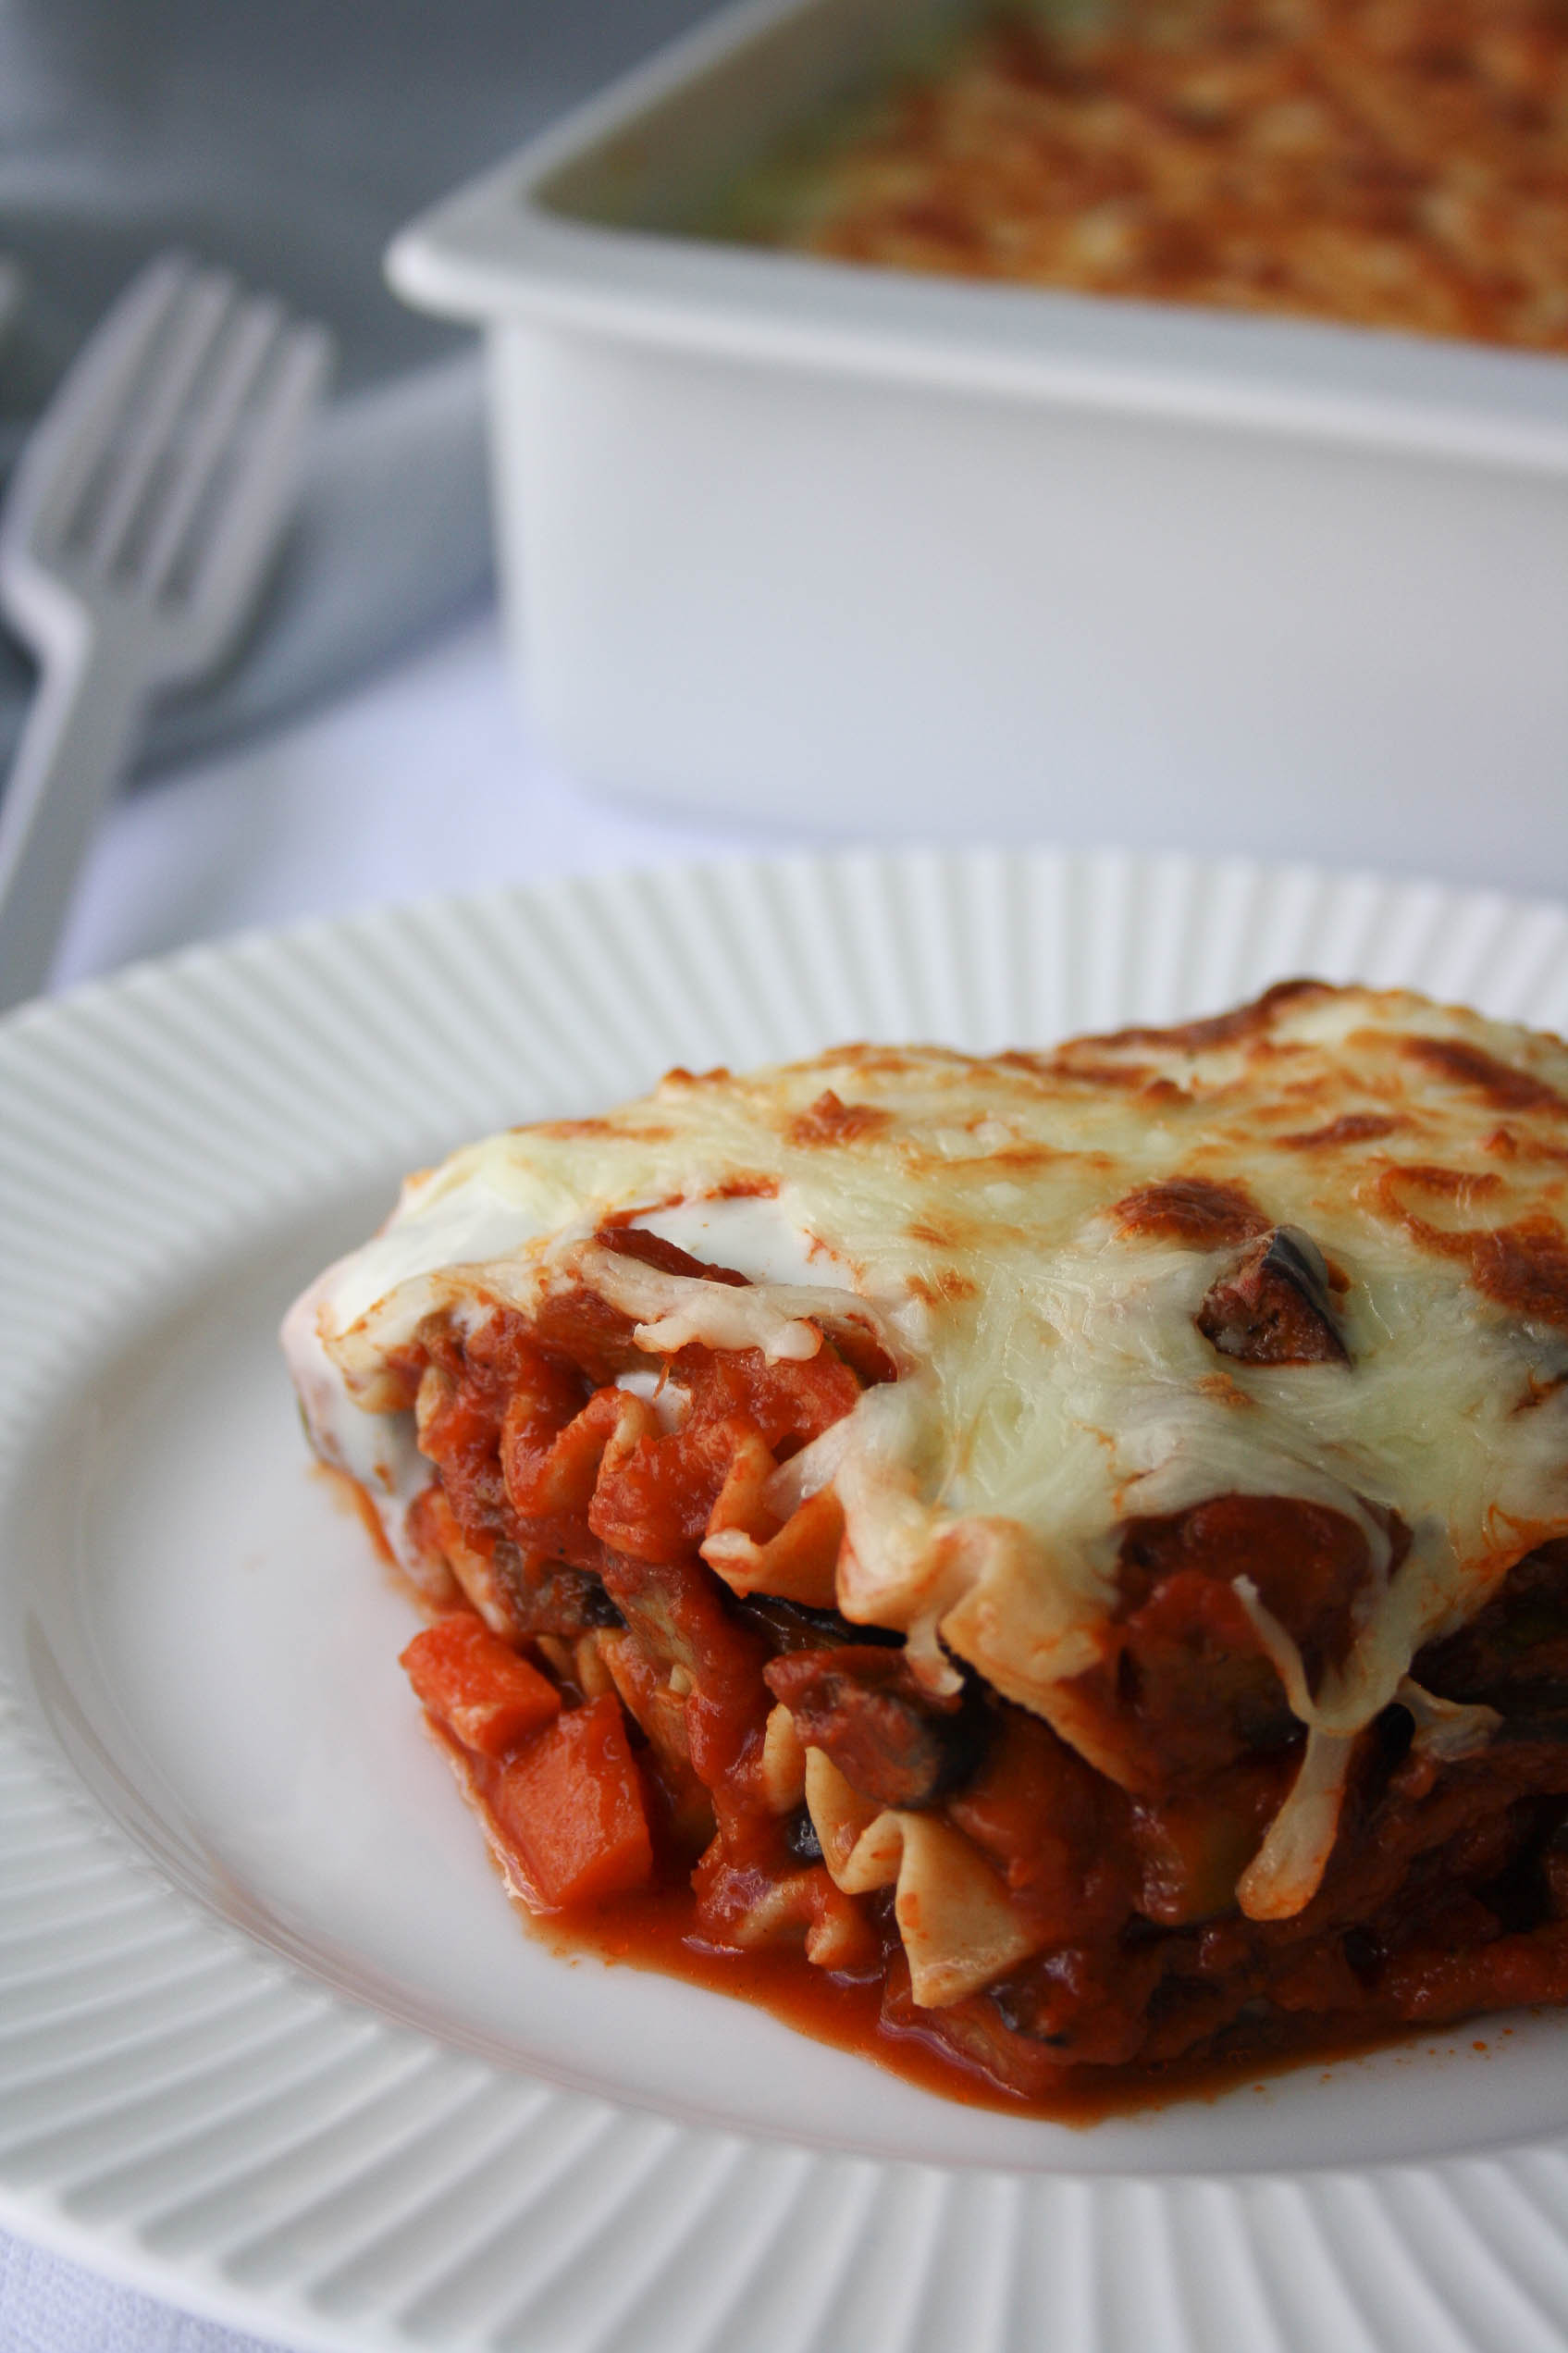 piece of lasagna in a plate. Whole wheat noodles with vegetables in tomato sauce and cheese and bechamel sauce on top